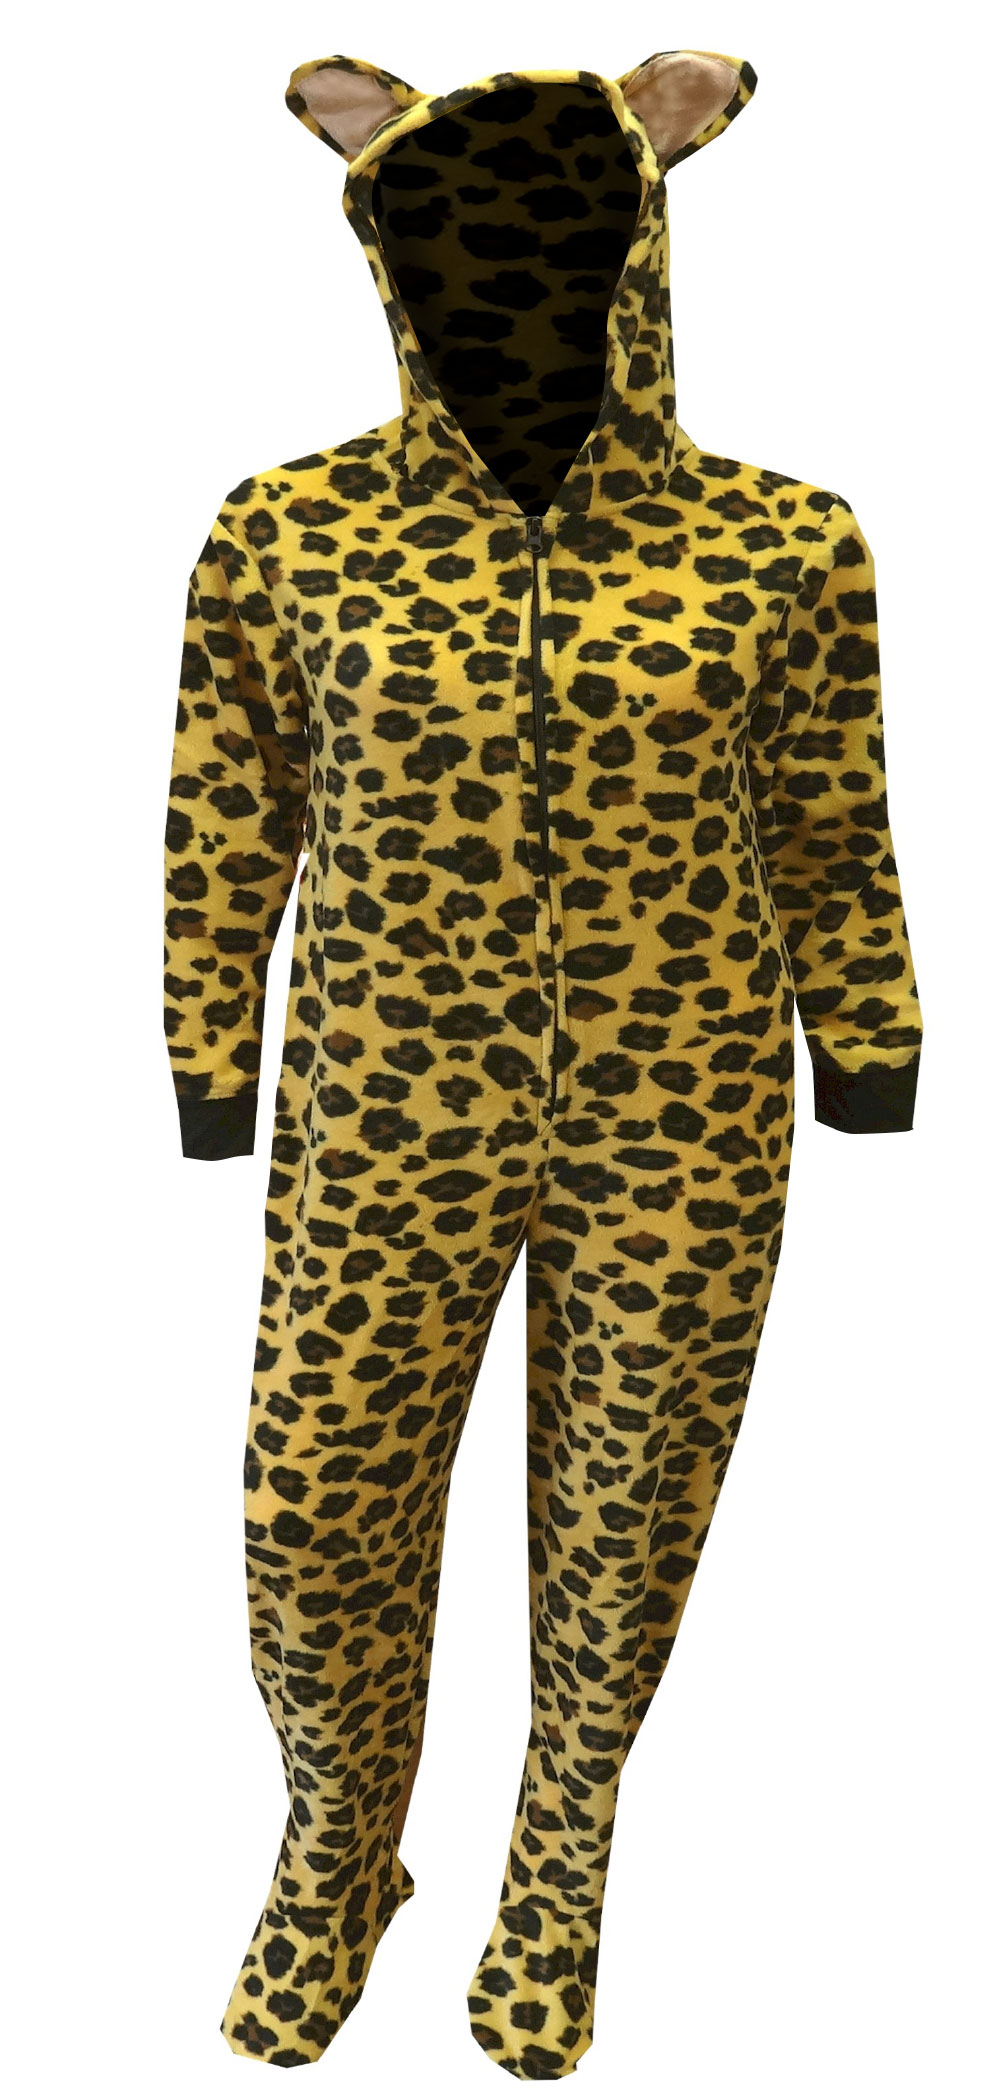 Women's Animal Onesies. Showing 40 of results that match your query. Search Product Result. Product - Womens Pink & Gray Leopard Cheetah Fuzzy Pajamas Animal Print Sleep Set. Product Image. Price $ Product Title. Womens Pink & Gray Leopard .